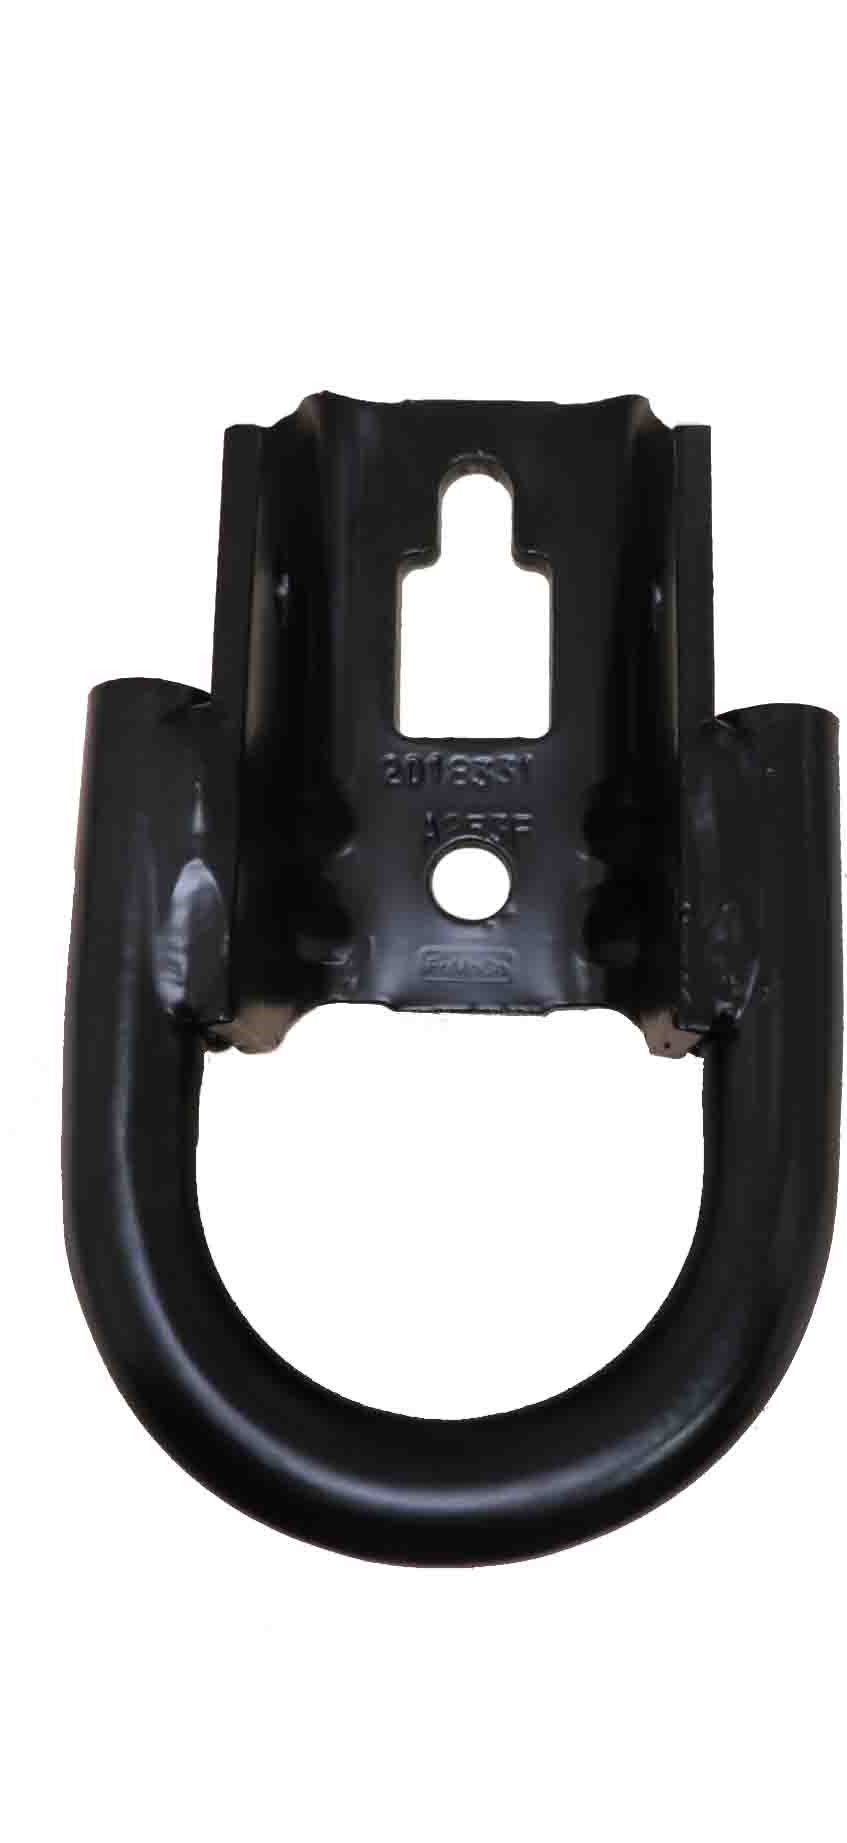 FL3Z-17N808-A Ford OEM F-150 Front Tow Hooks Powder Coated Black Single